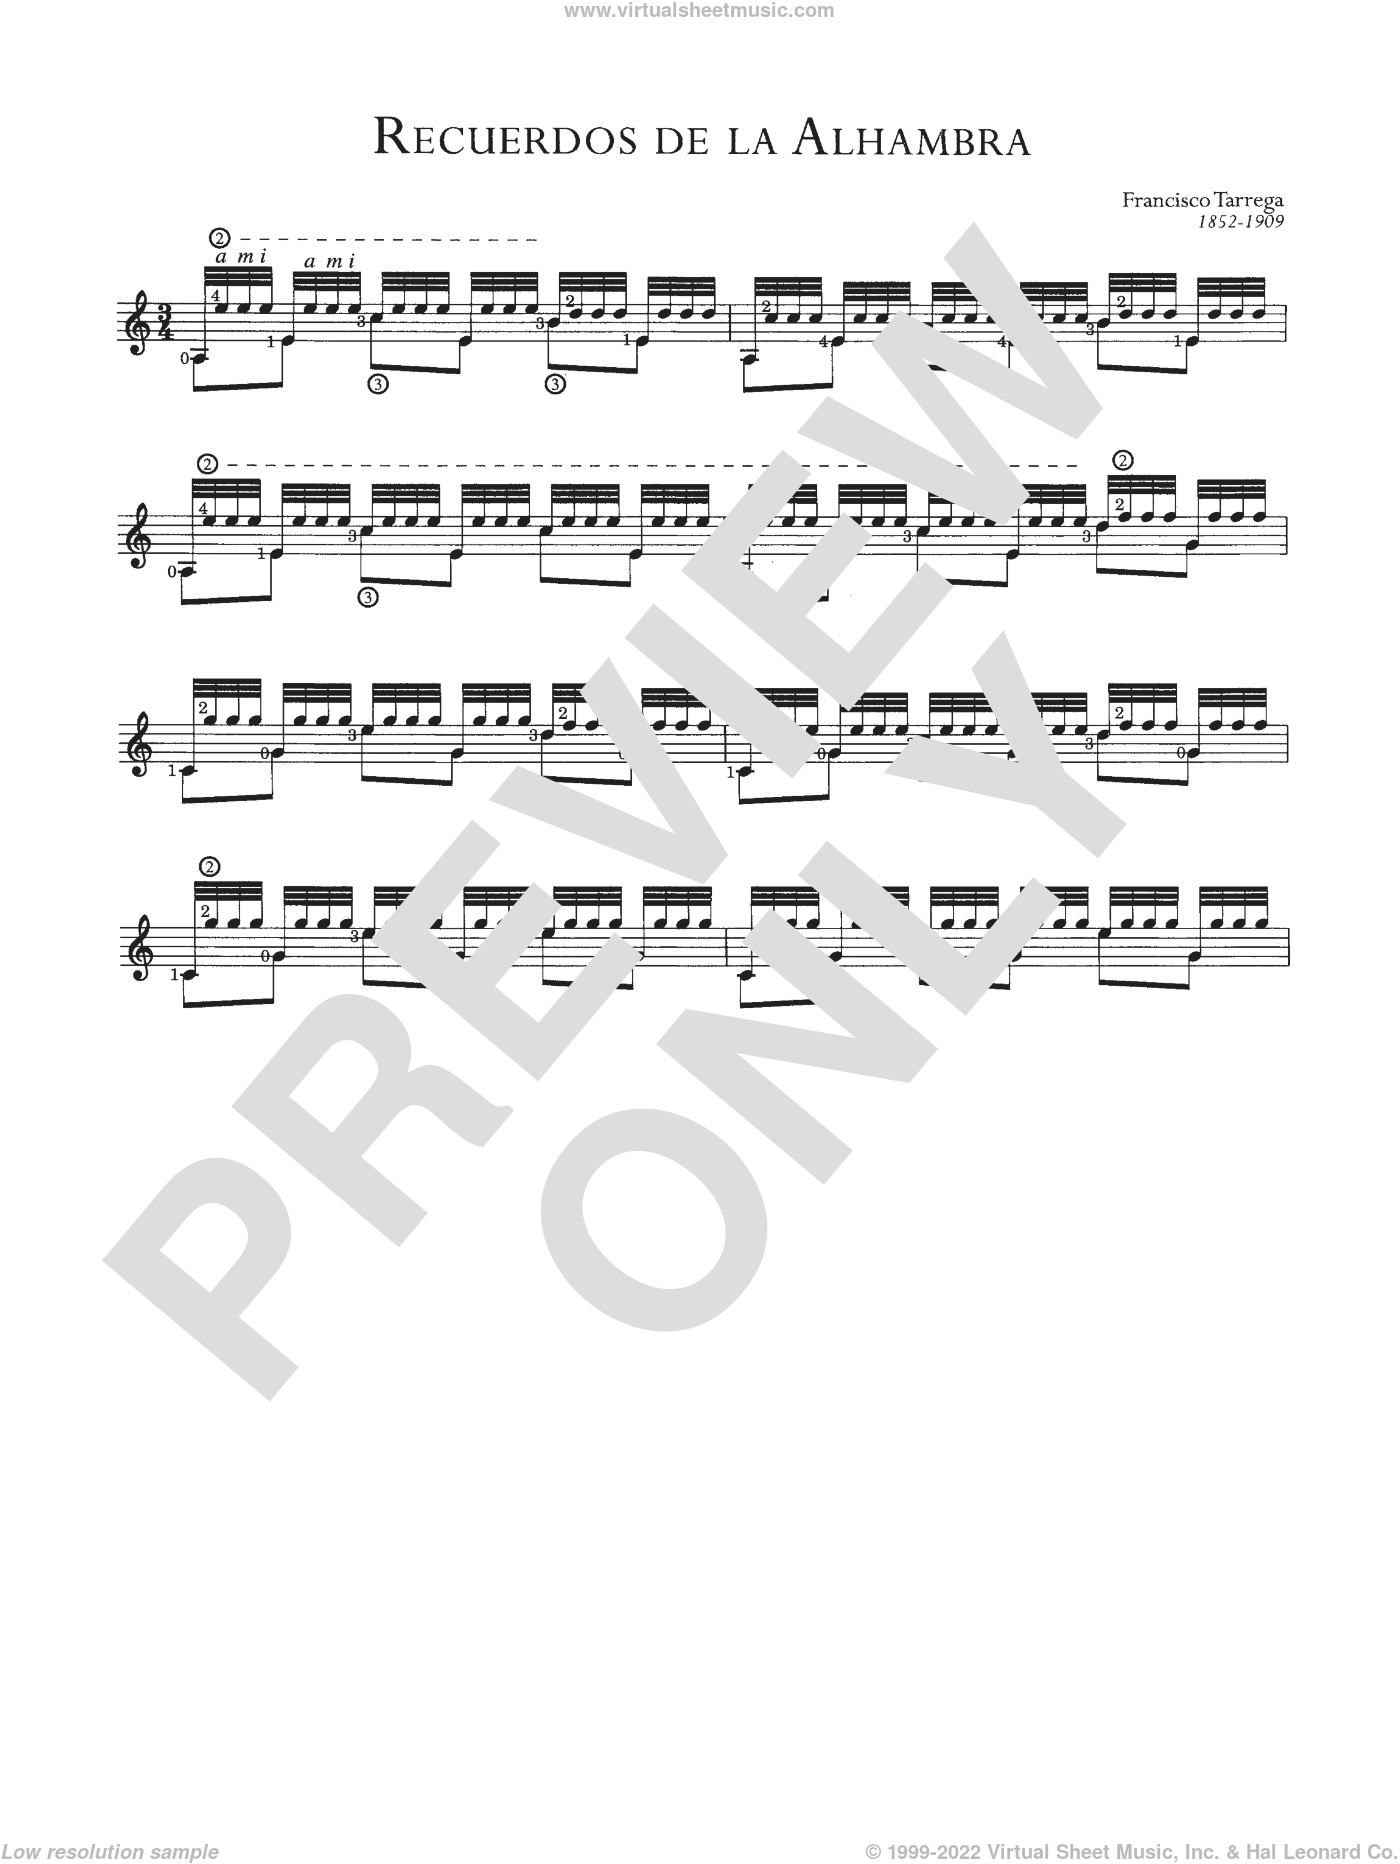 Recuerdos De La Alhambra sheet music for guitar solo (chords) by Francisco Tarrega and Francisco TA�A�rrega, classical score, easy guitar (chords). Score Image Preview.